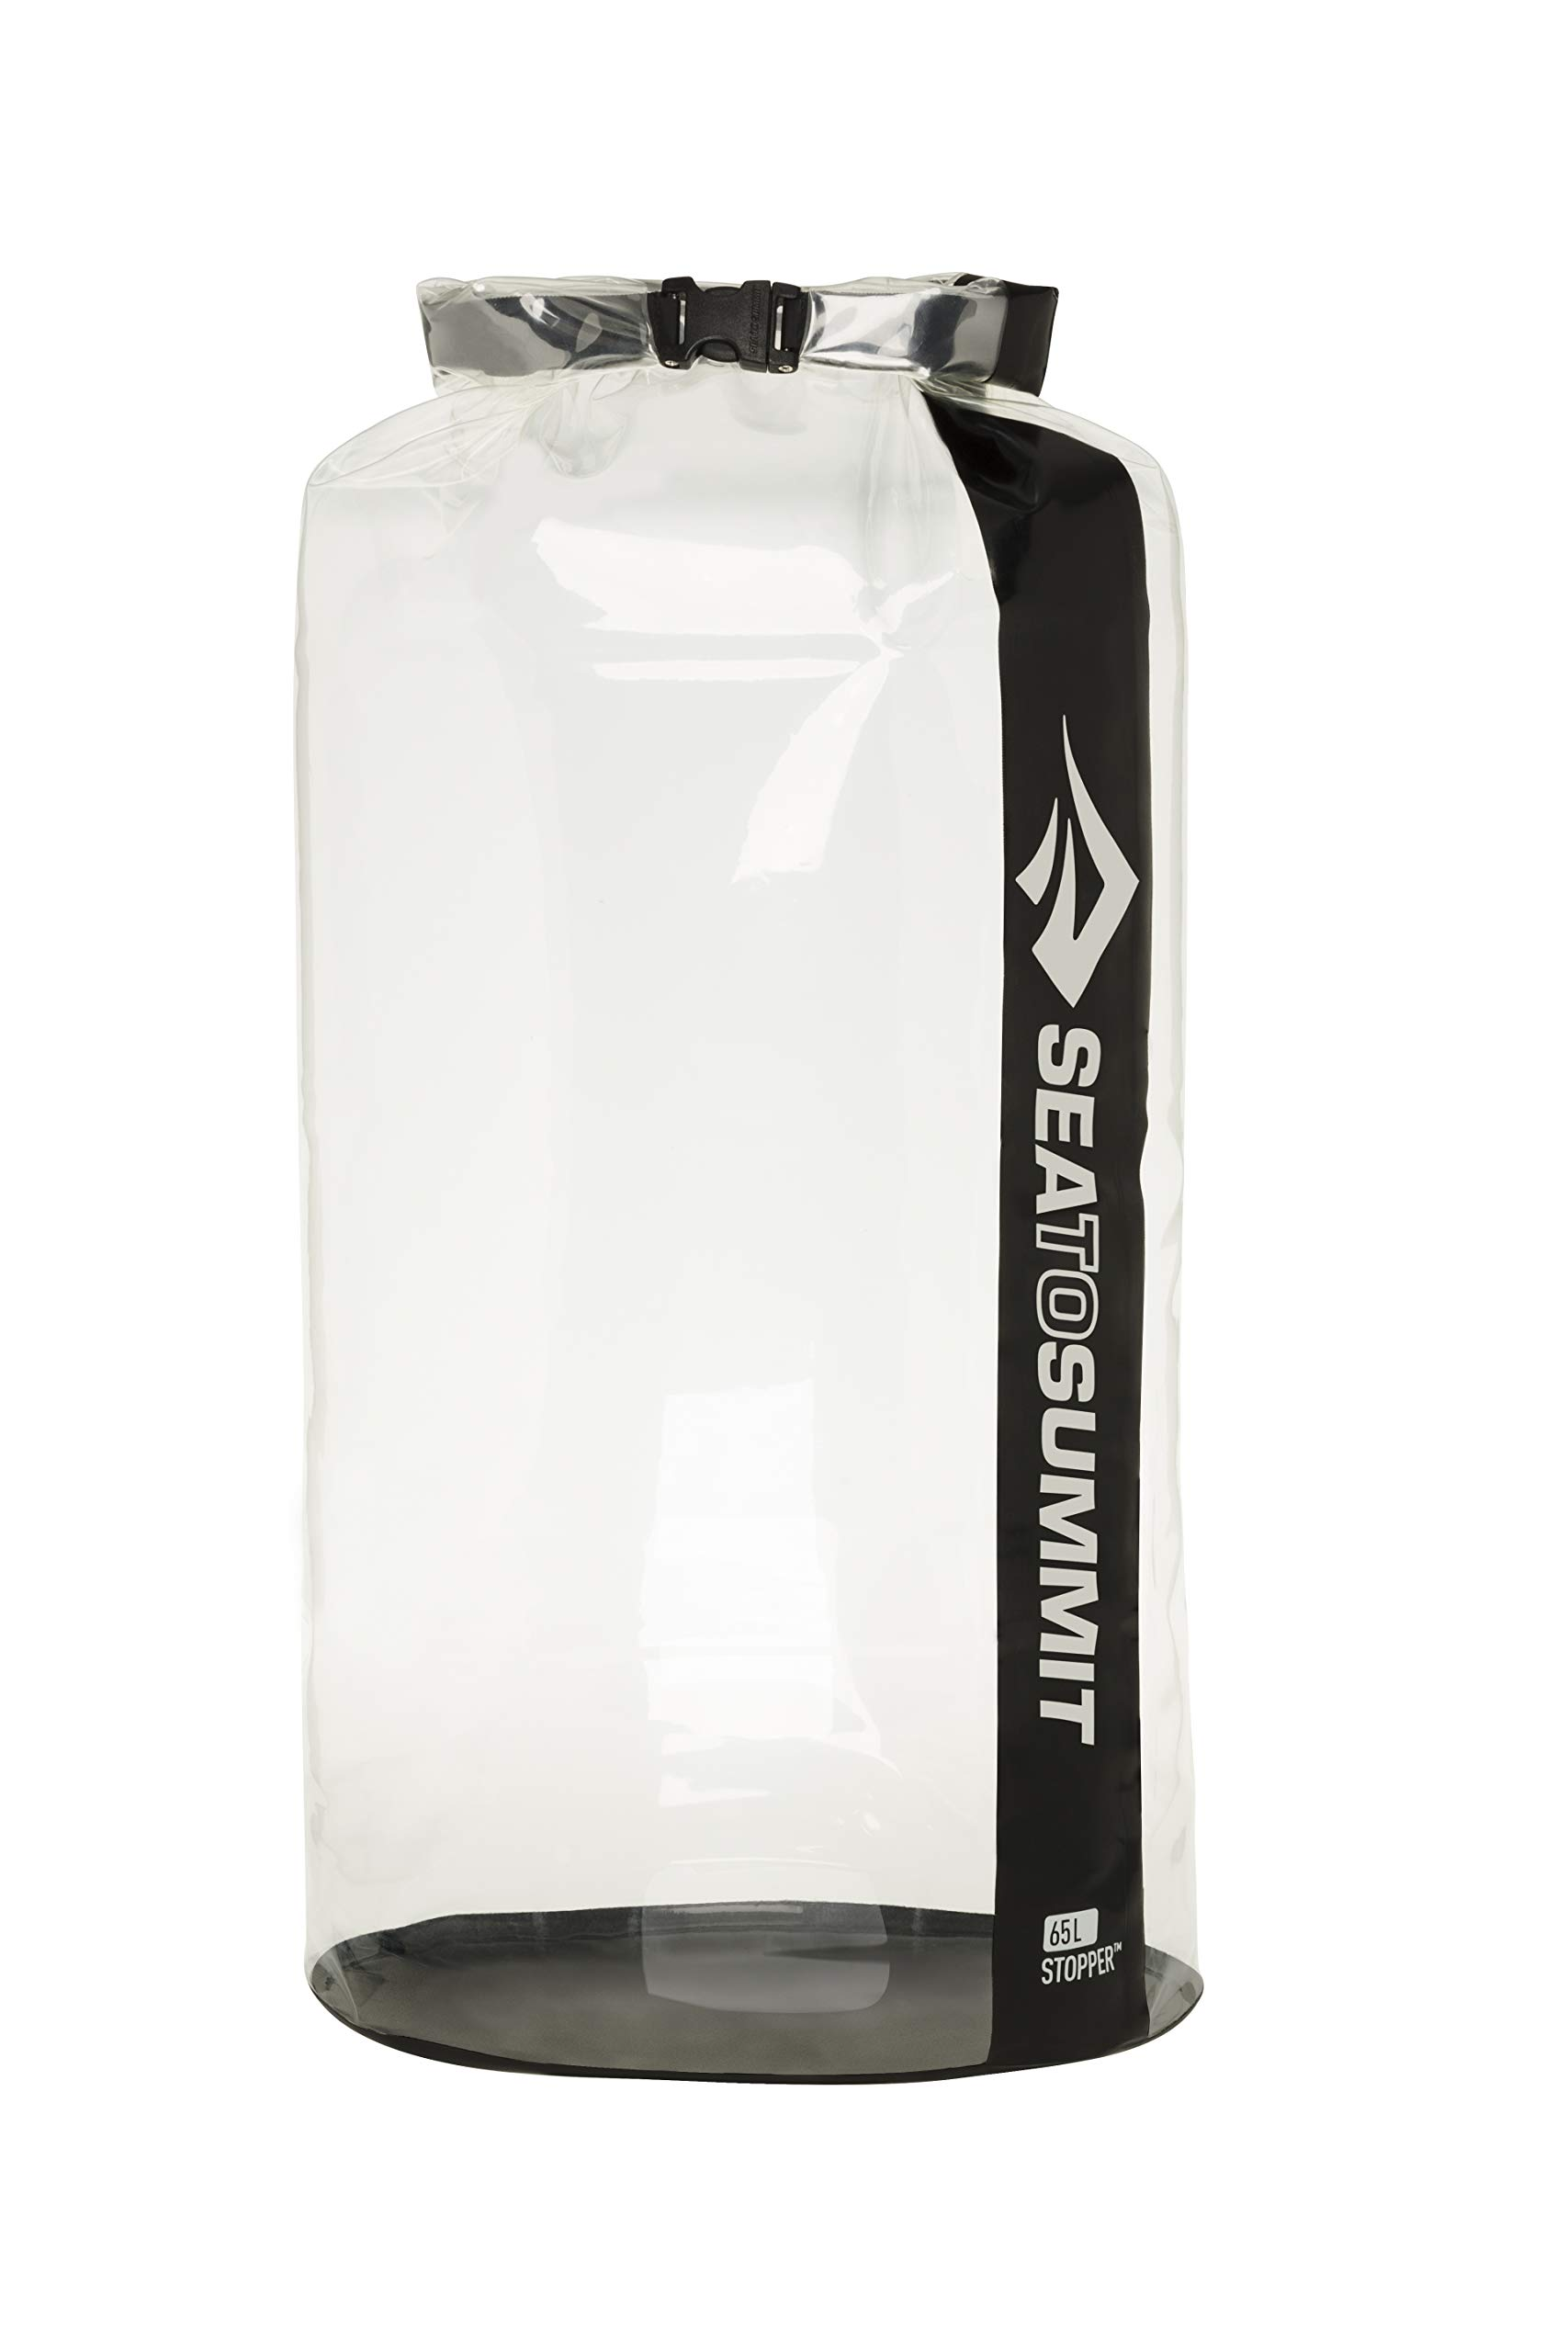 Sea to Summit Clear Stopper Dry Bag, 65 Liter by Sea to Summit